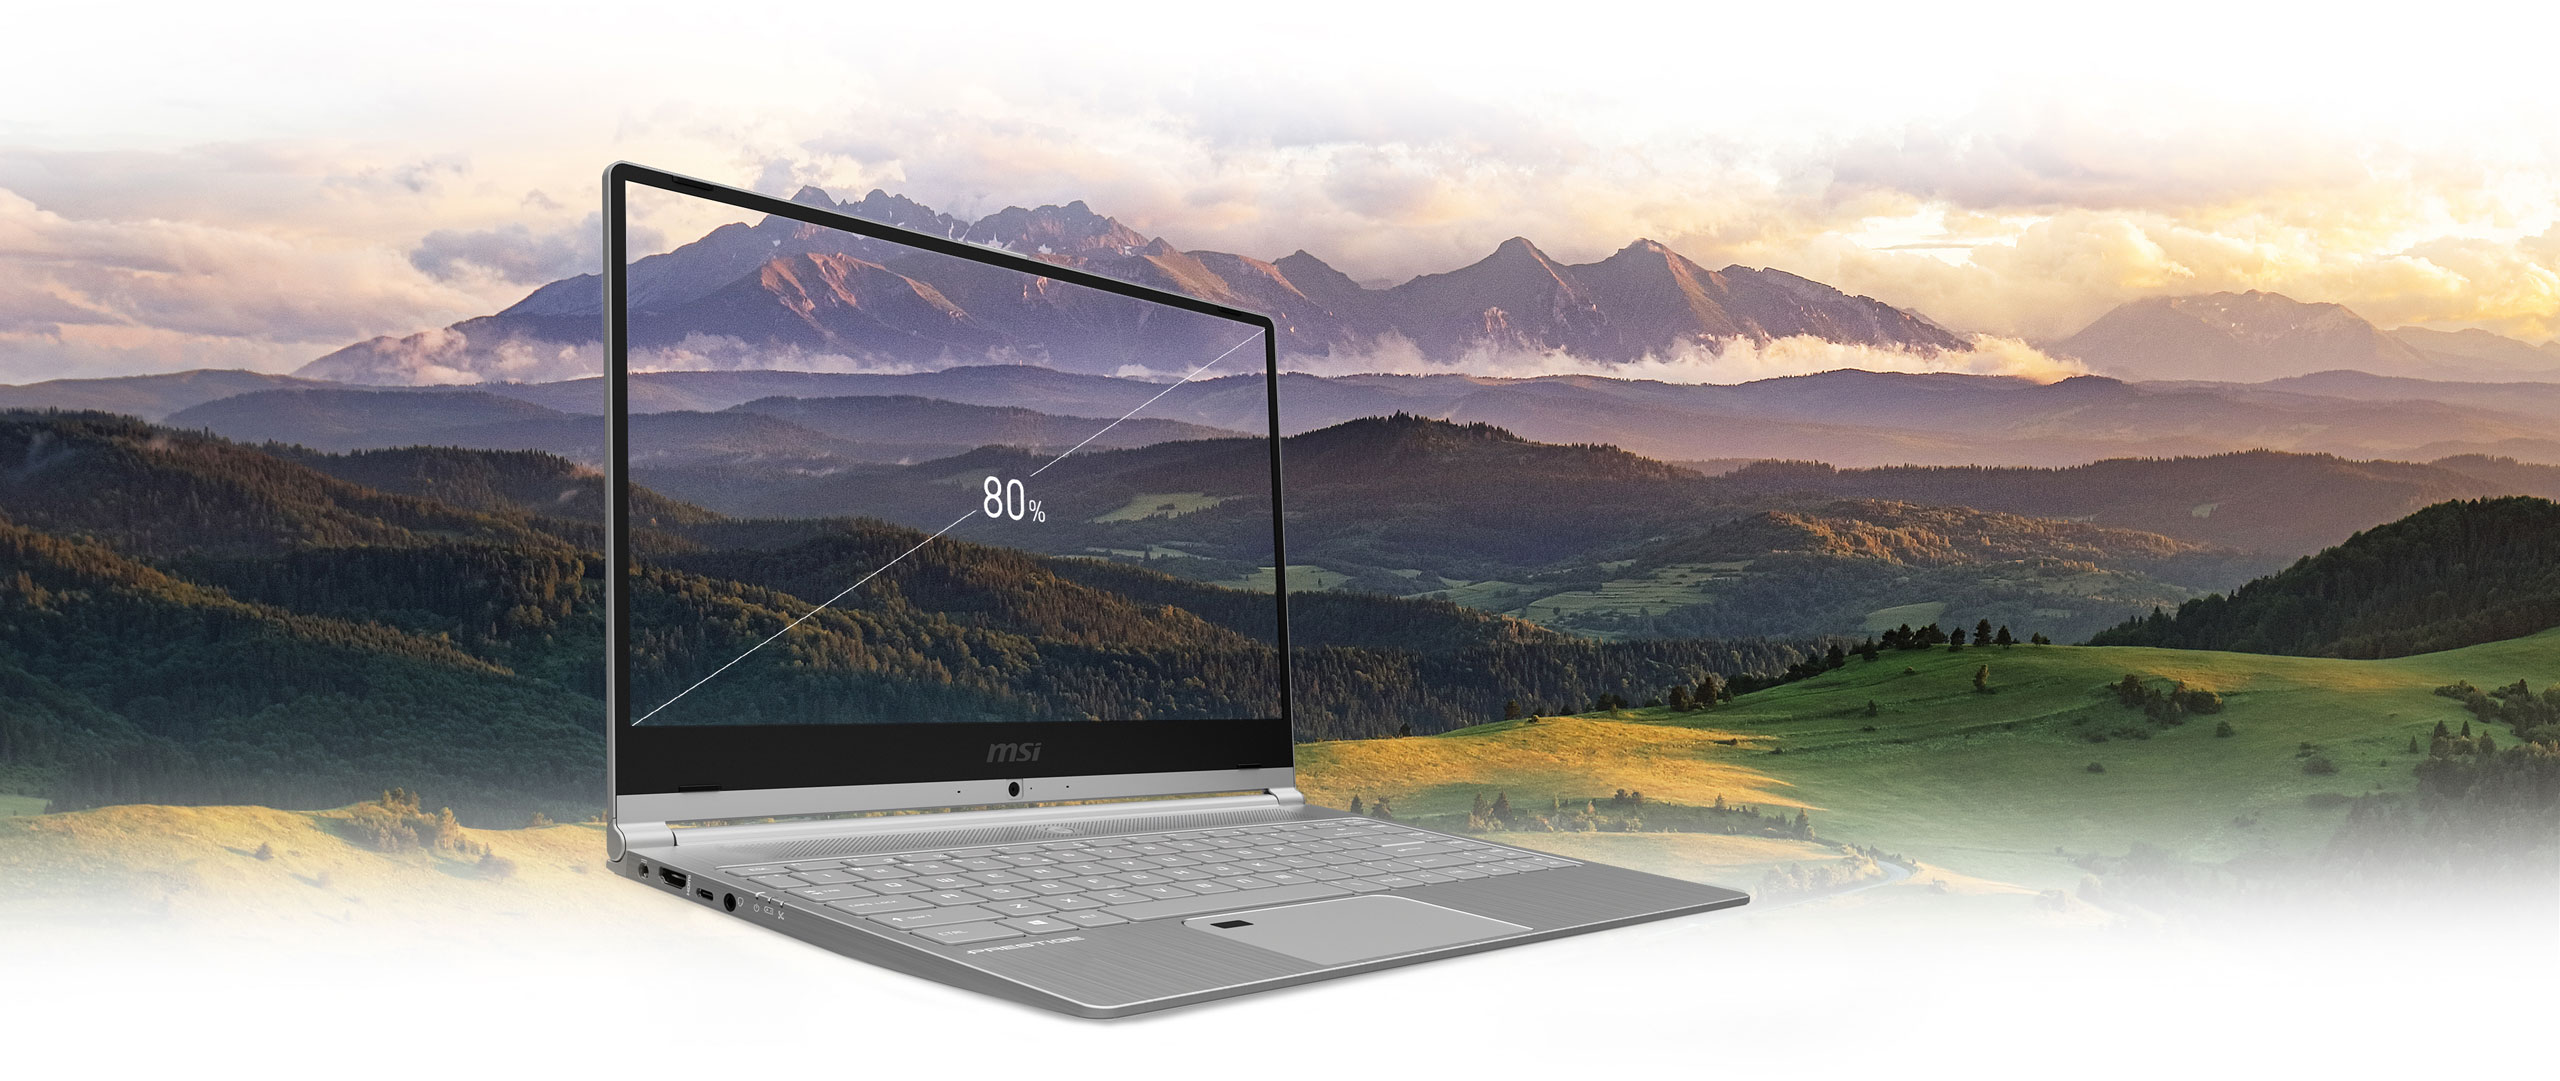 Msi Ps42 Slim Elegant Prestige Electrical Wiring Youtube In Addition Bentek Biner Box Solar Also Wire The 57mm Thin Bezel Resulted A High Screen To Body Ratio 14 Chassis Enjoy Magnificent View Across Fhd Ips Level Anti Glare Display